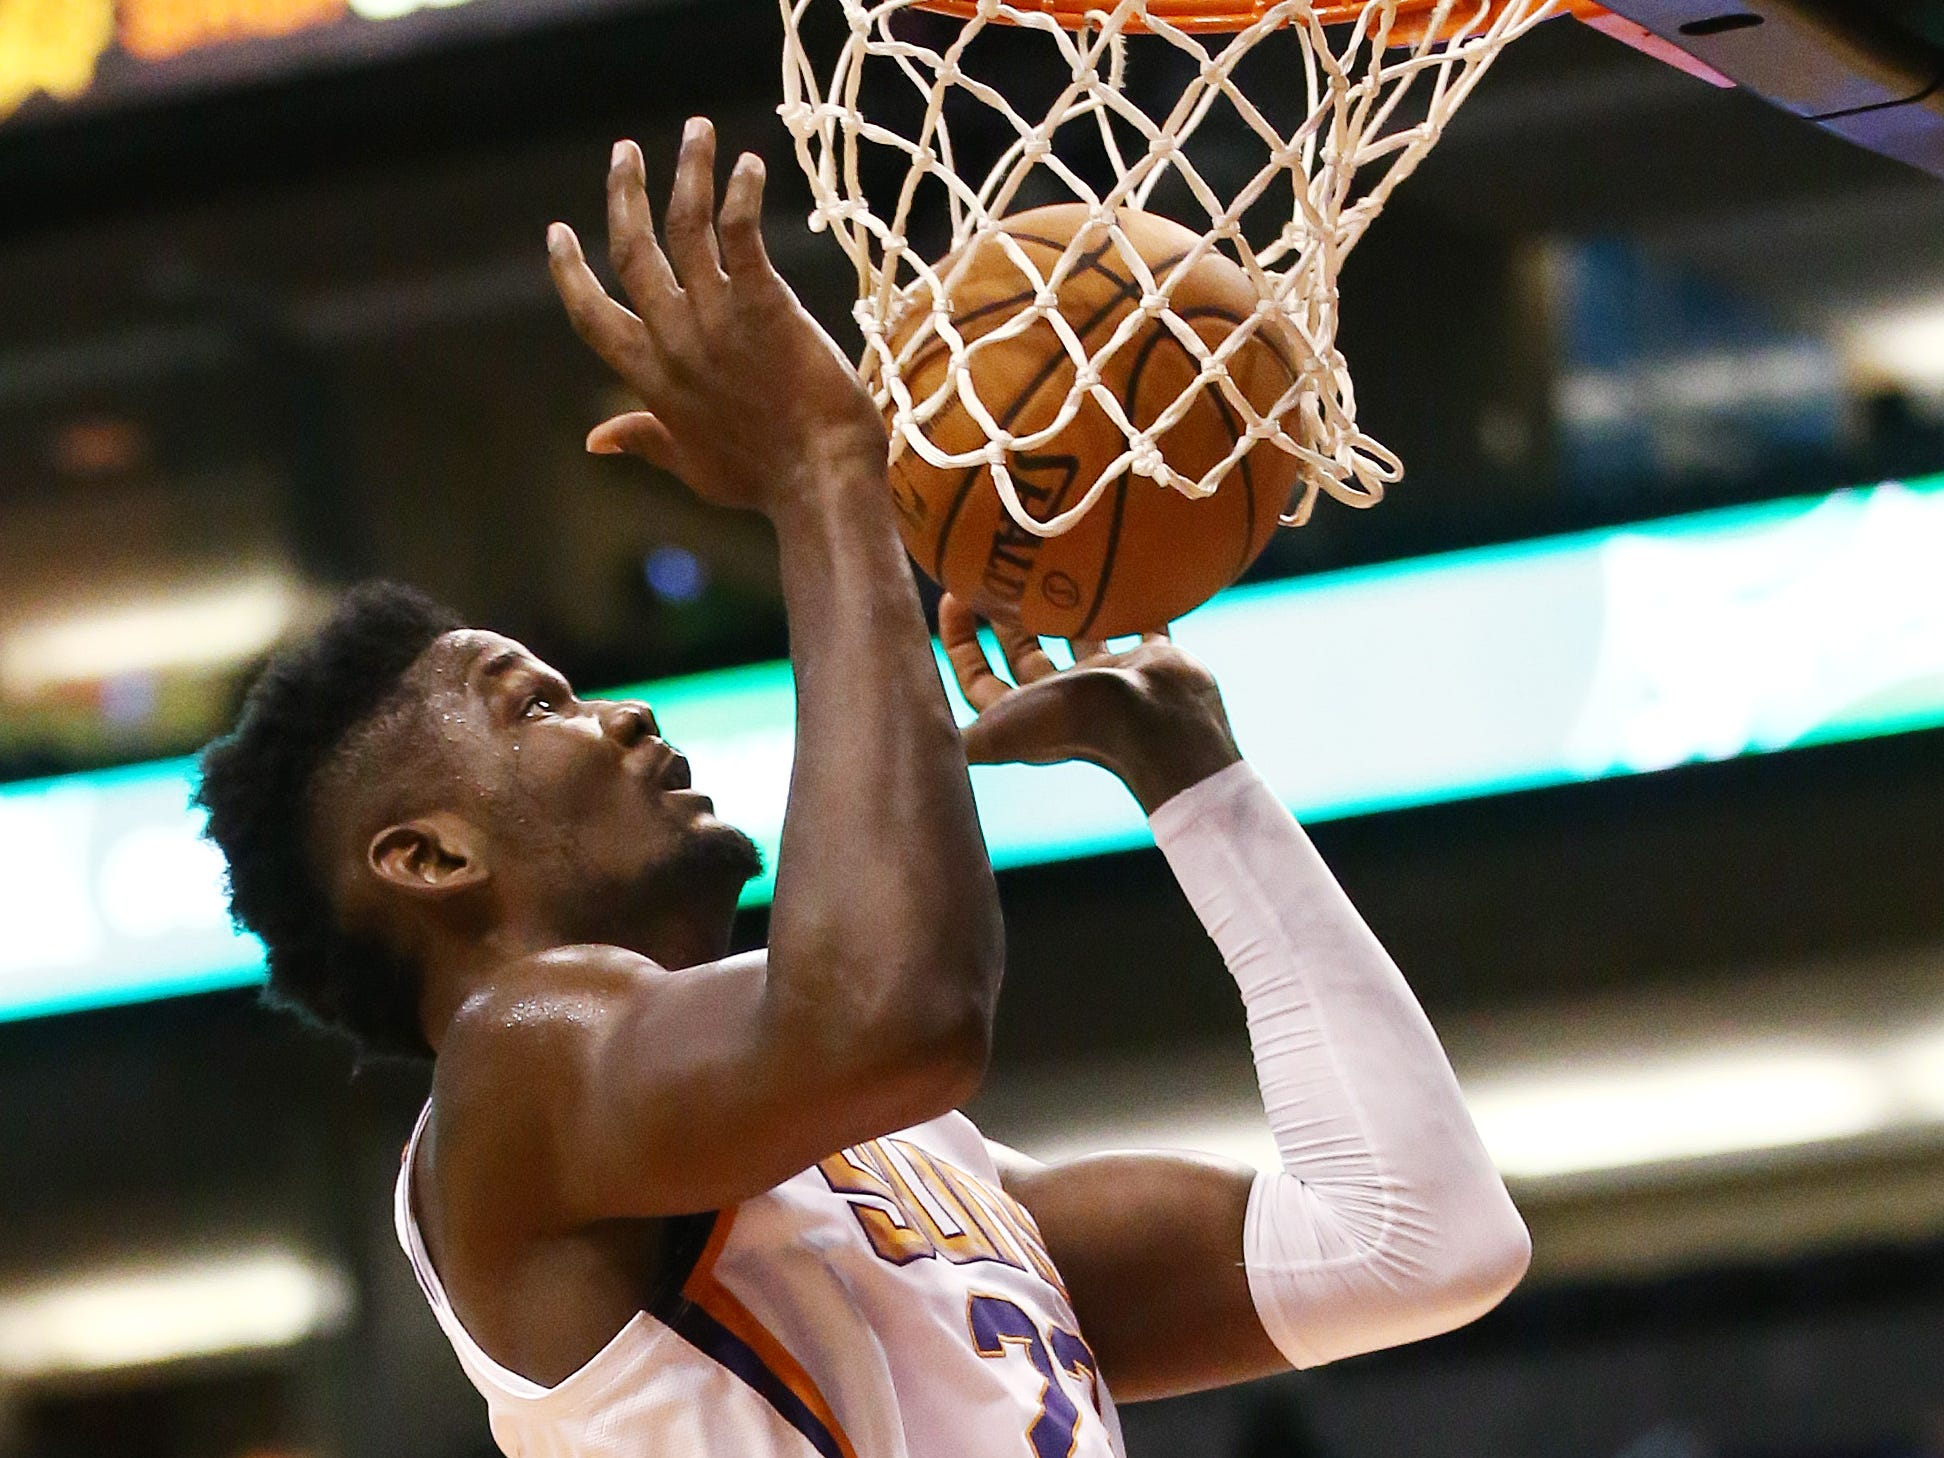 Phoenix Suns center Deandre Ayton drops the ball into the hoop against the Portland Trail Blazers during a preseason game at Talking Stick Resort Arena on Oct. 5, 2018, in Phoenix, Ariz.